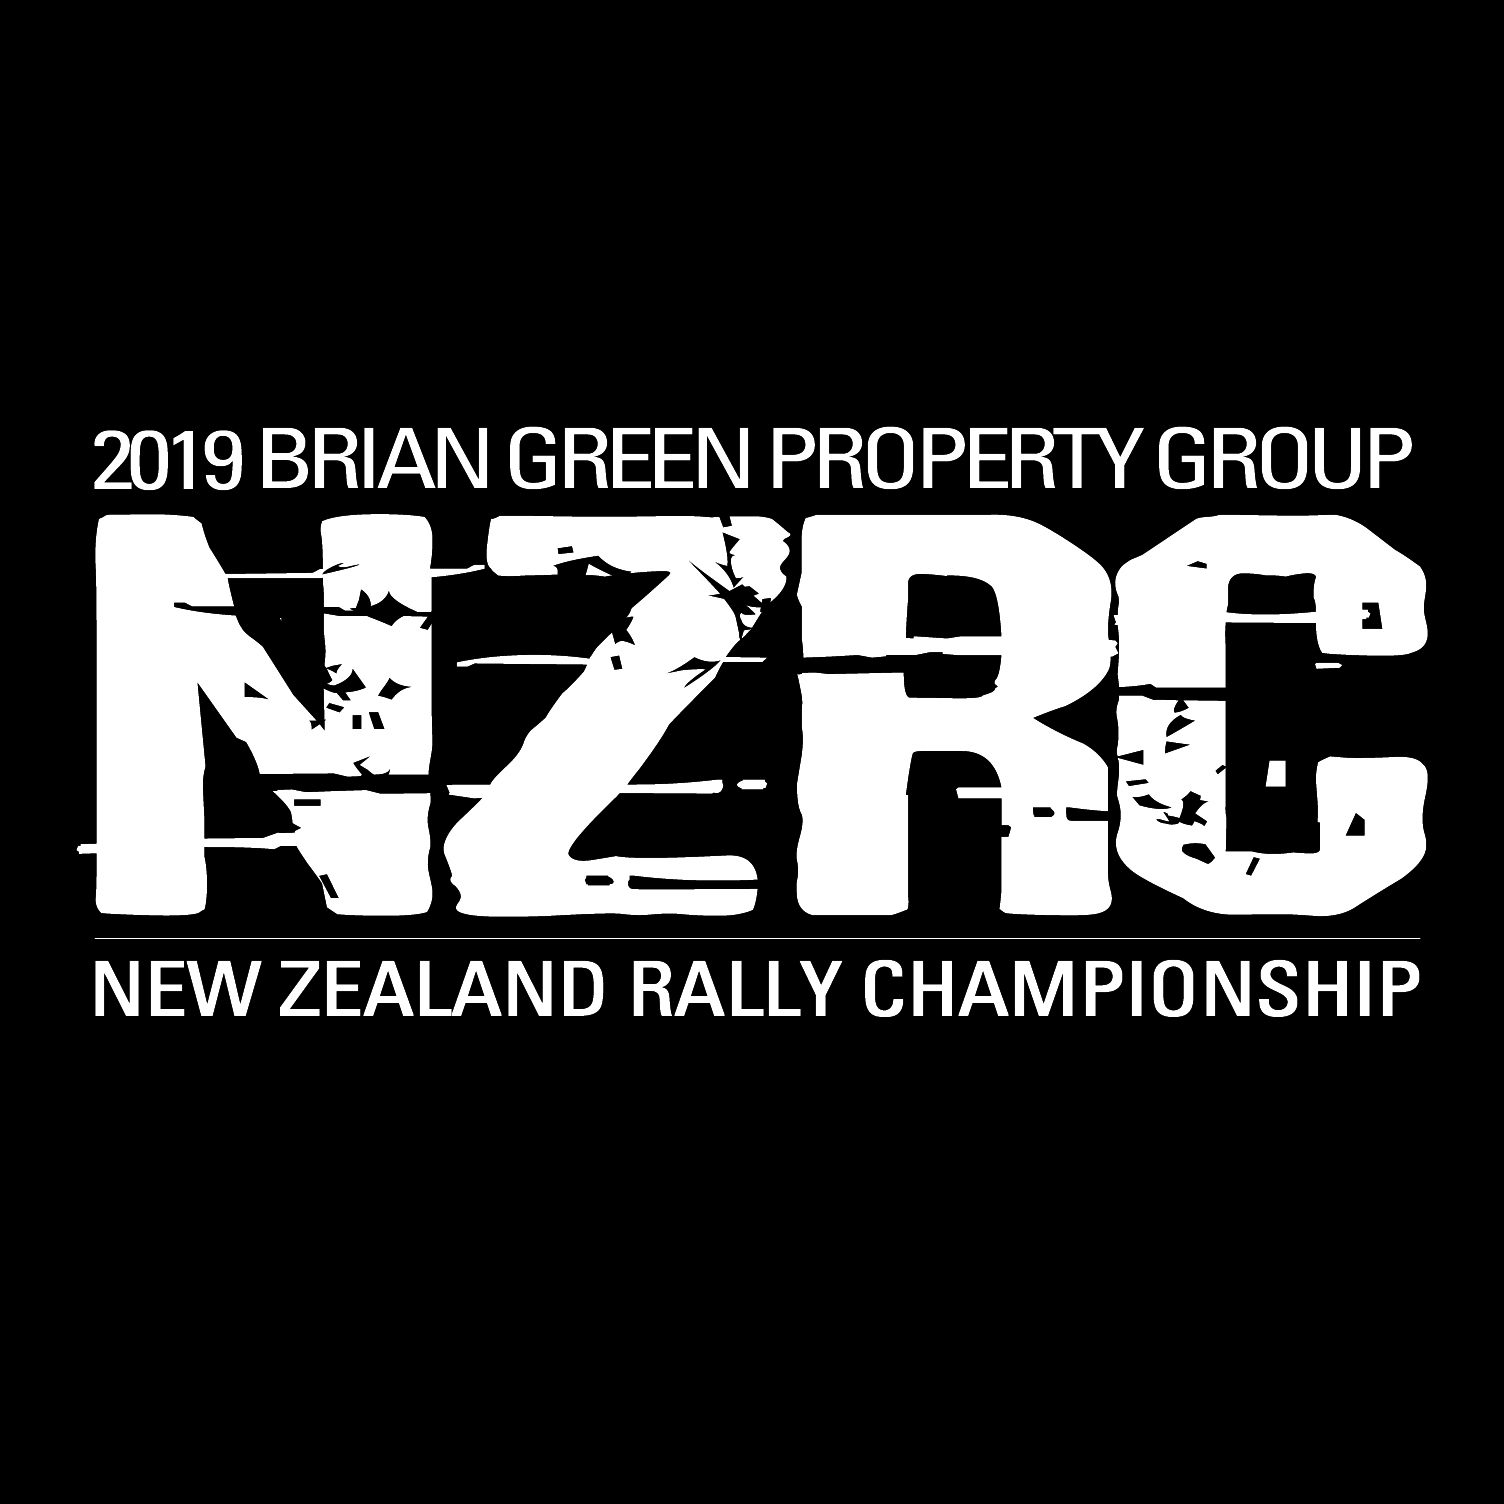 NZRC to heat up Canterbury Forests | :: Brian Green Property Group New Zealand Rally Championship ::